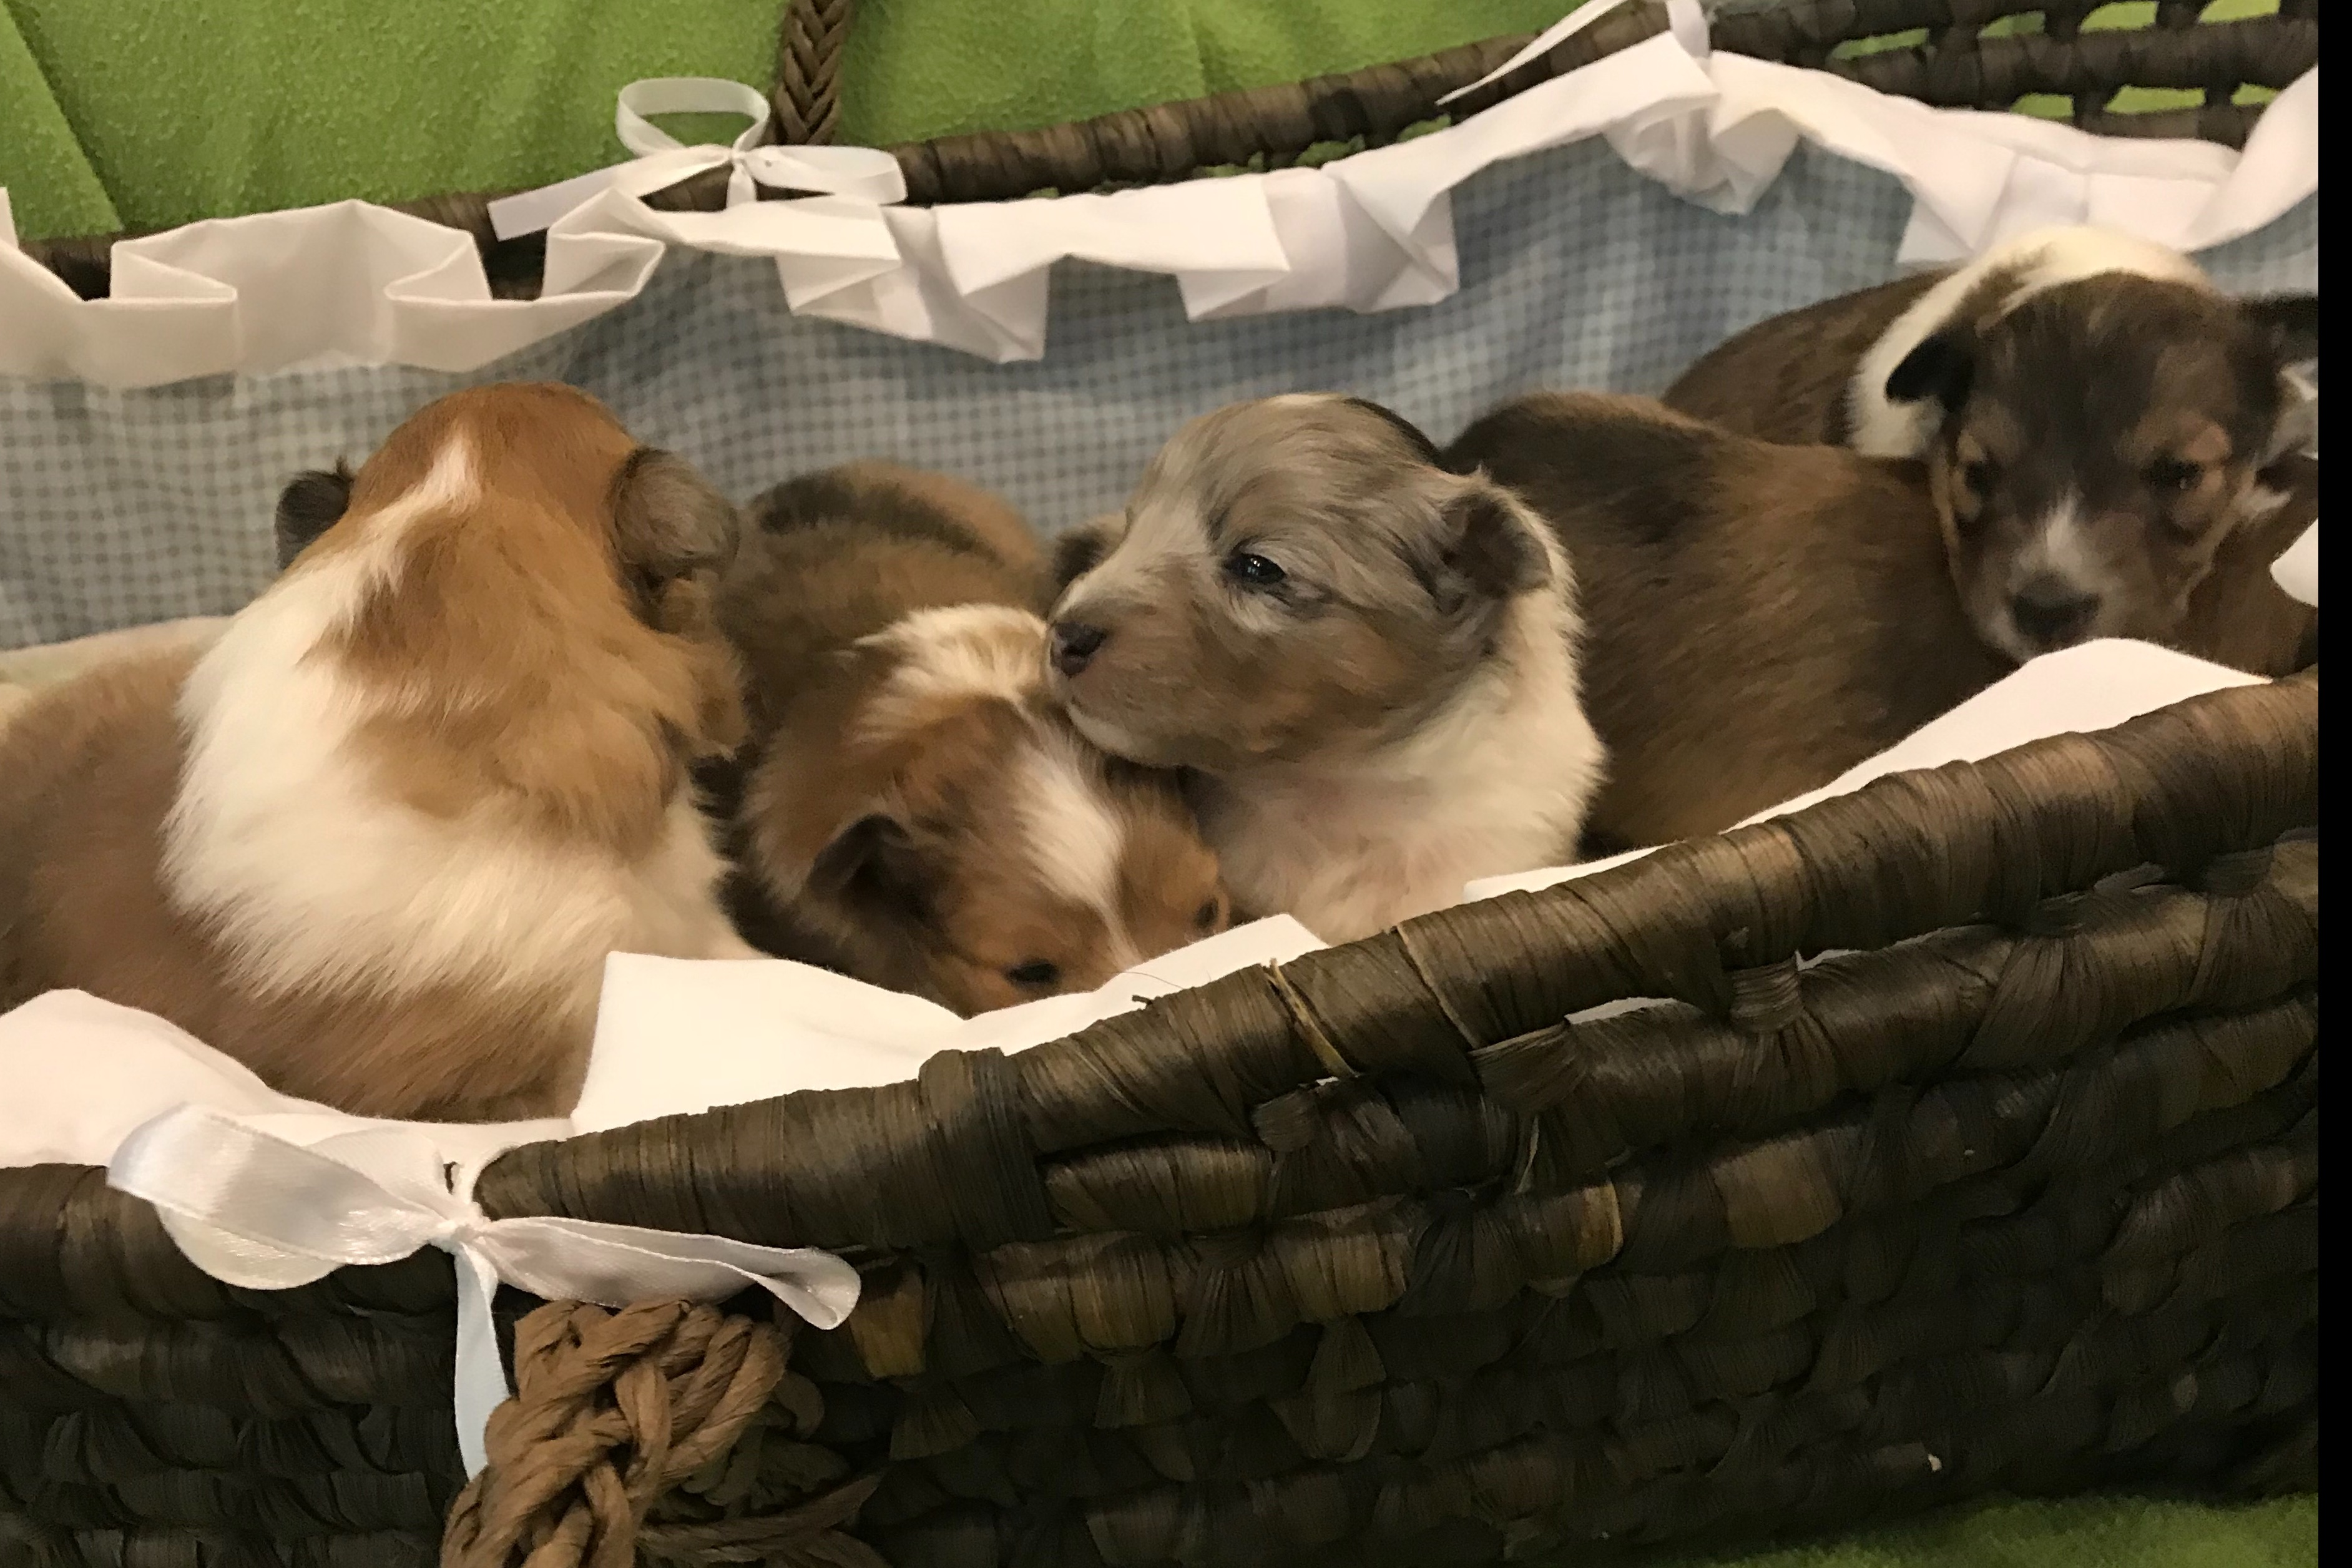 Redemption Has Shetland Sheepdog Puppies For Sale In Salisbury Nc On Akc Puppyfinder Sheltie Puppies For Sale Shetland Sheepdog Sheltie Puppy